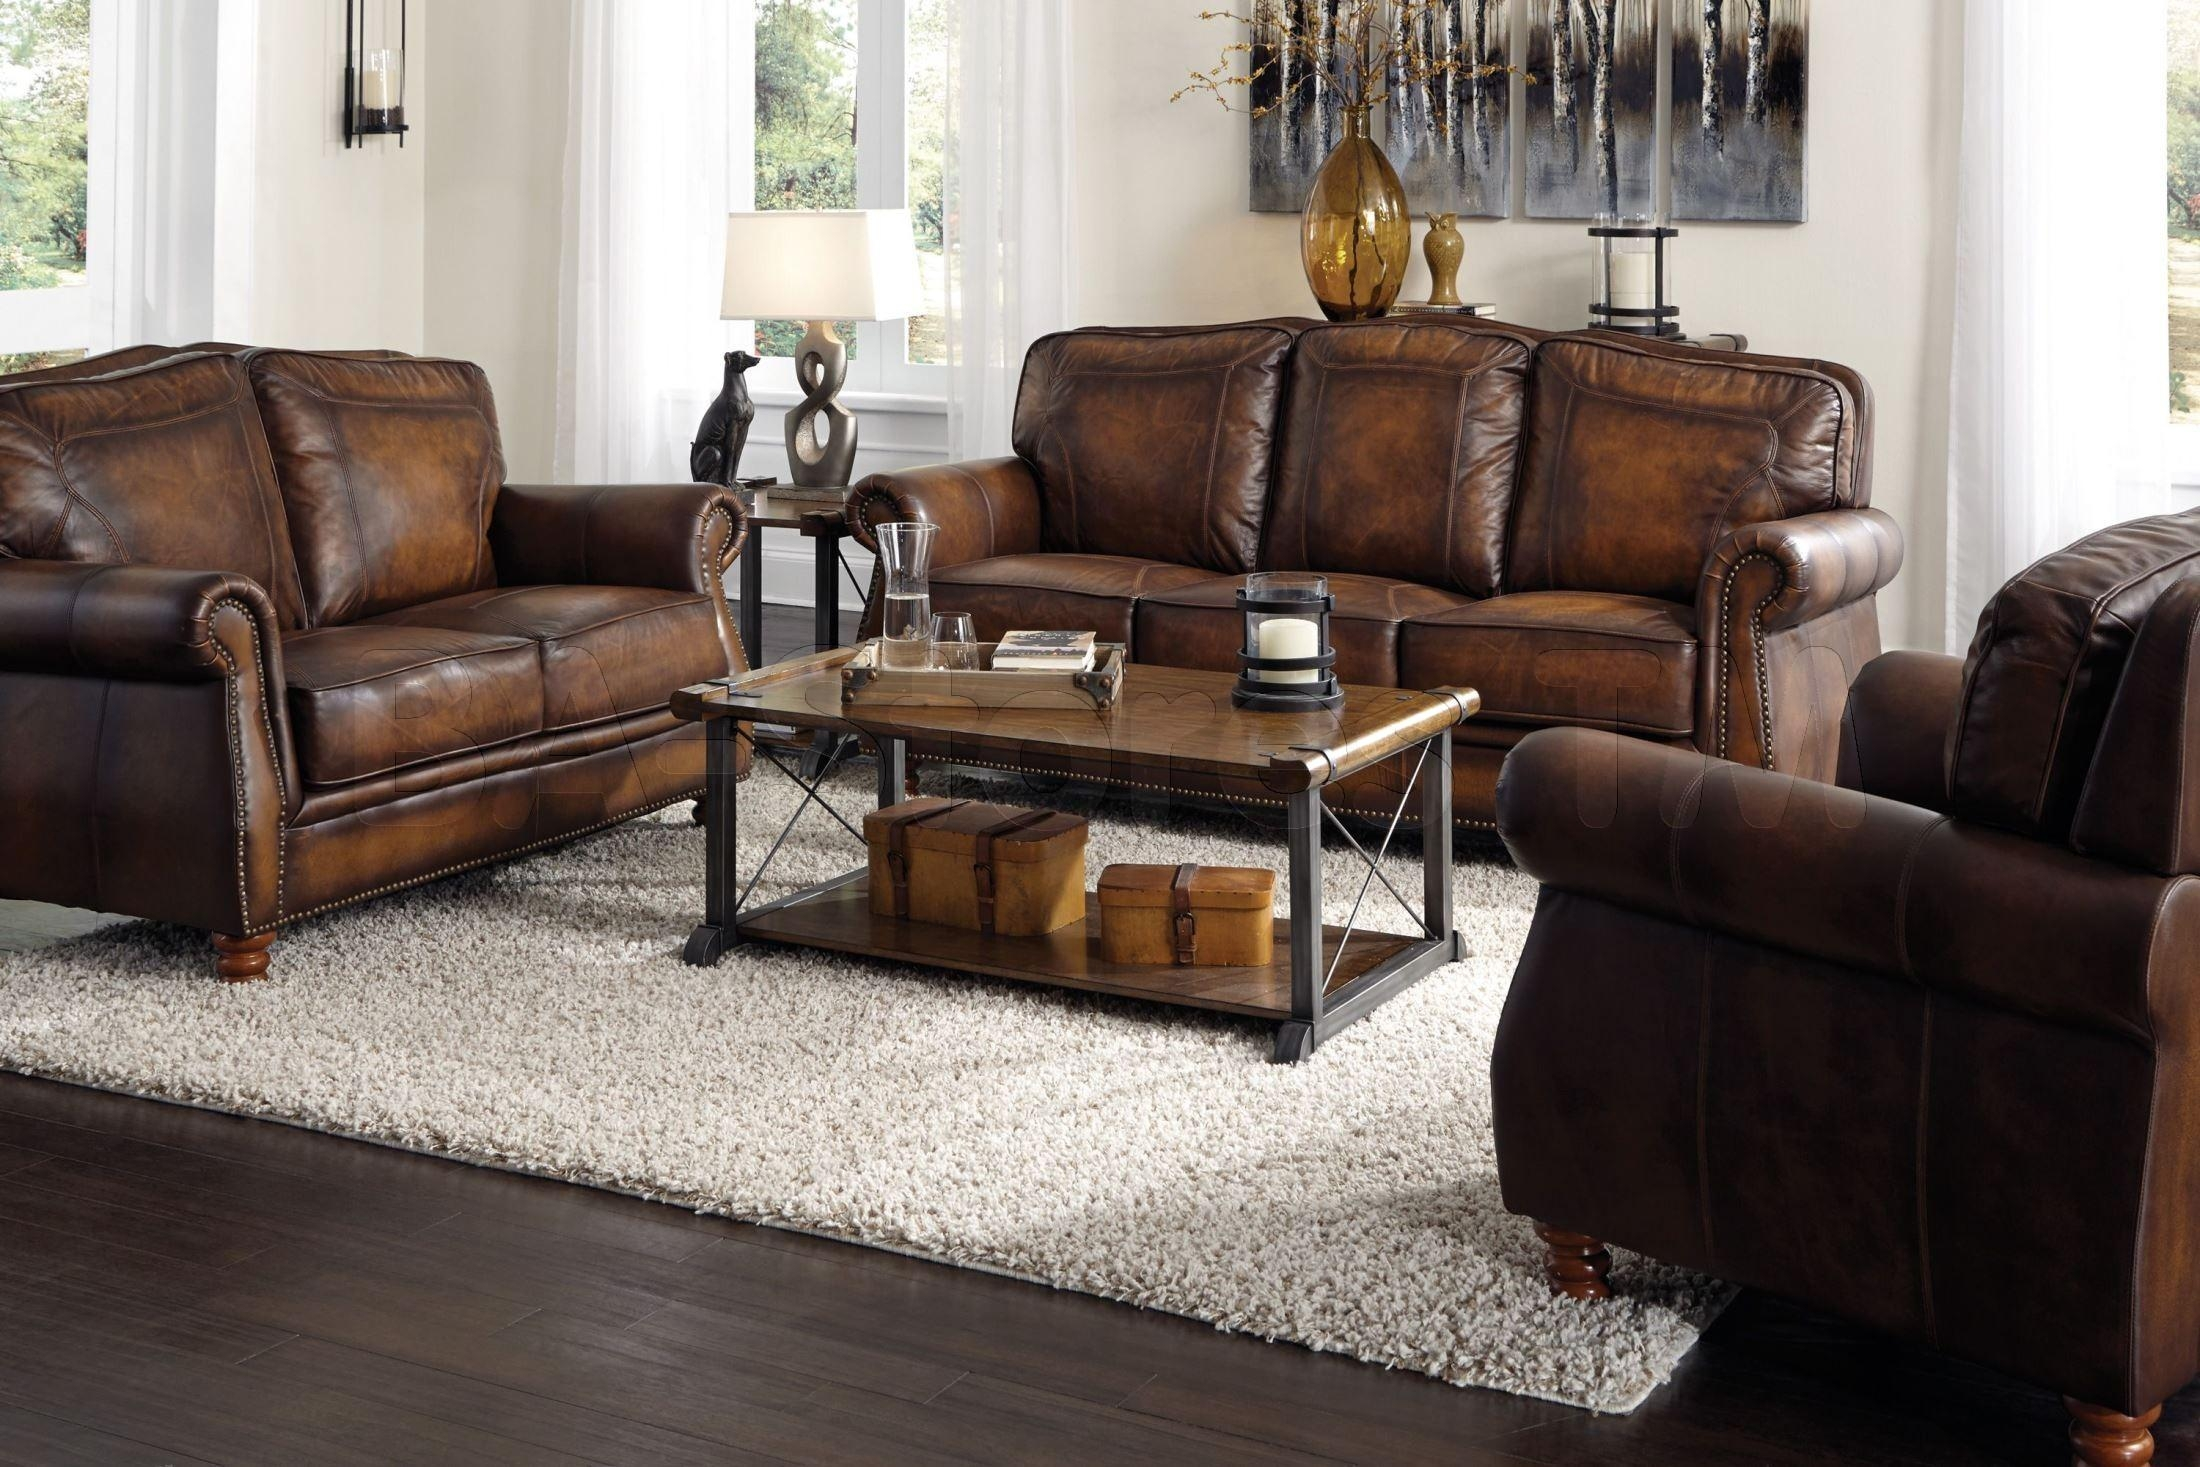 Sofas: Montbrook Hand Rubbed Brown Leather Sofa Coa 503981/3 – Ba With Regard To Brown Leather Sofas With Nailhead Trim (Image 18 of 20)